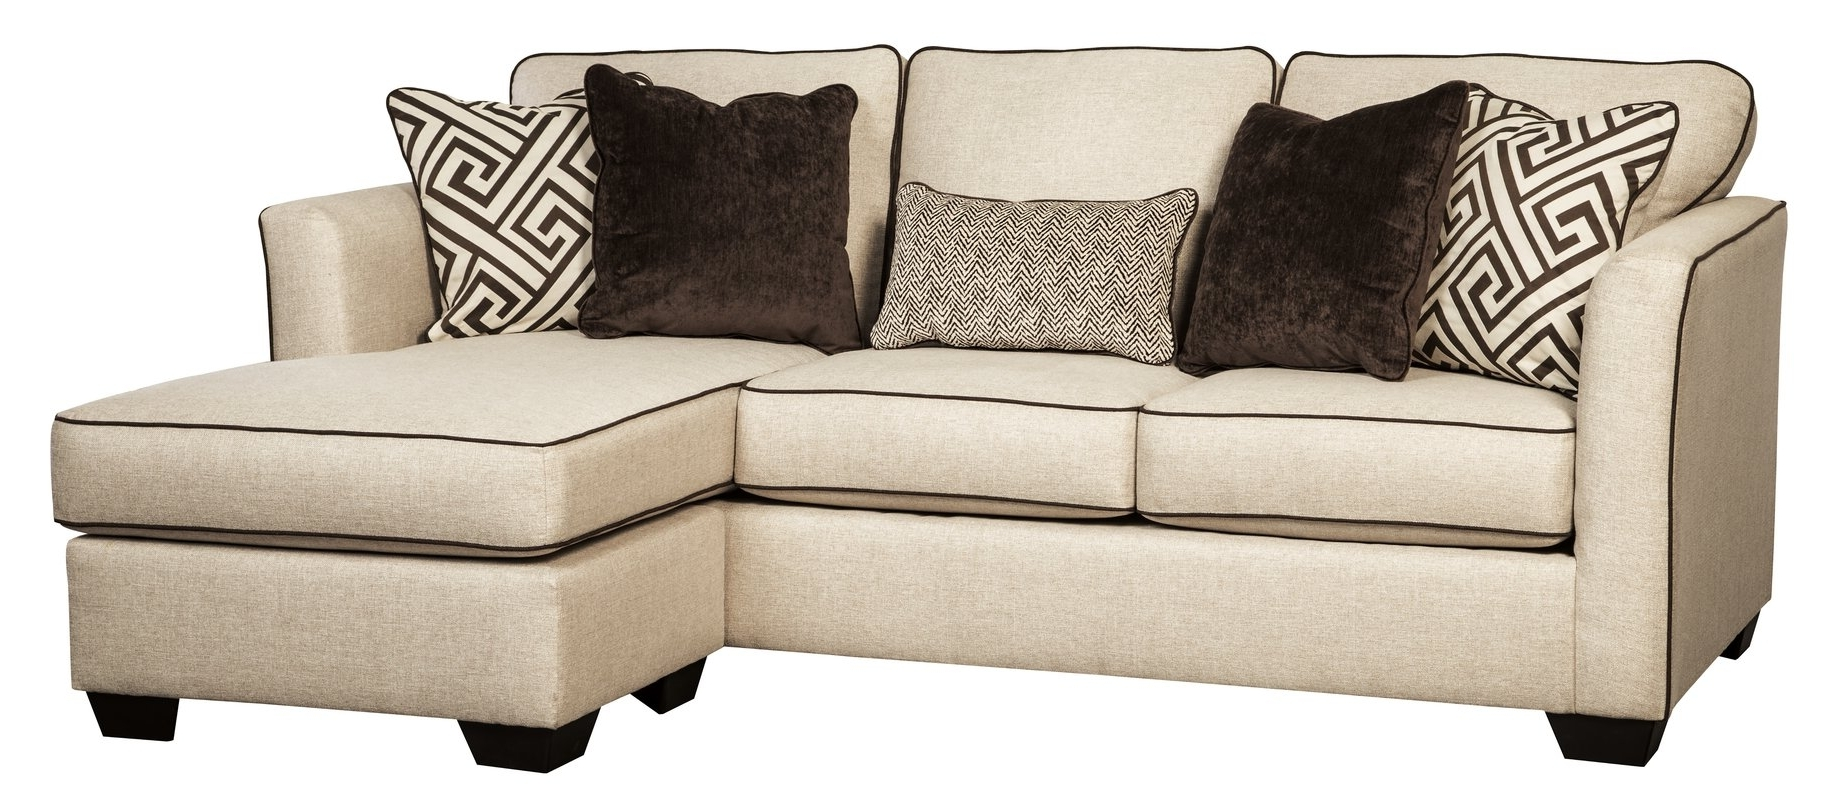 Wayfair For Chaise Sofas (View 12 of 15)